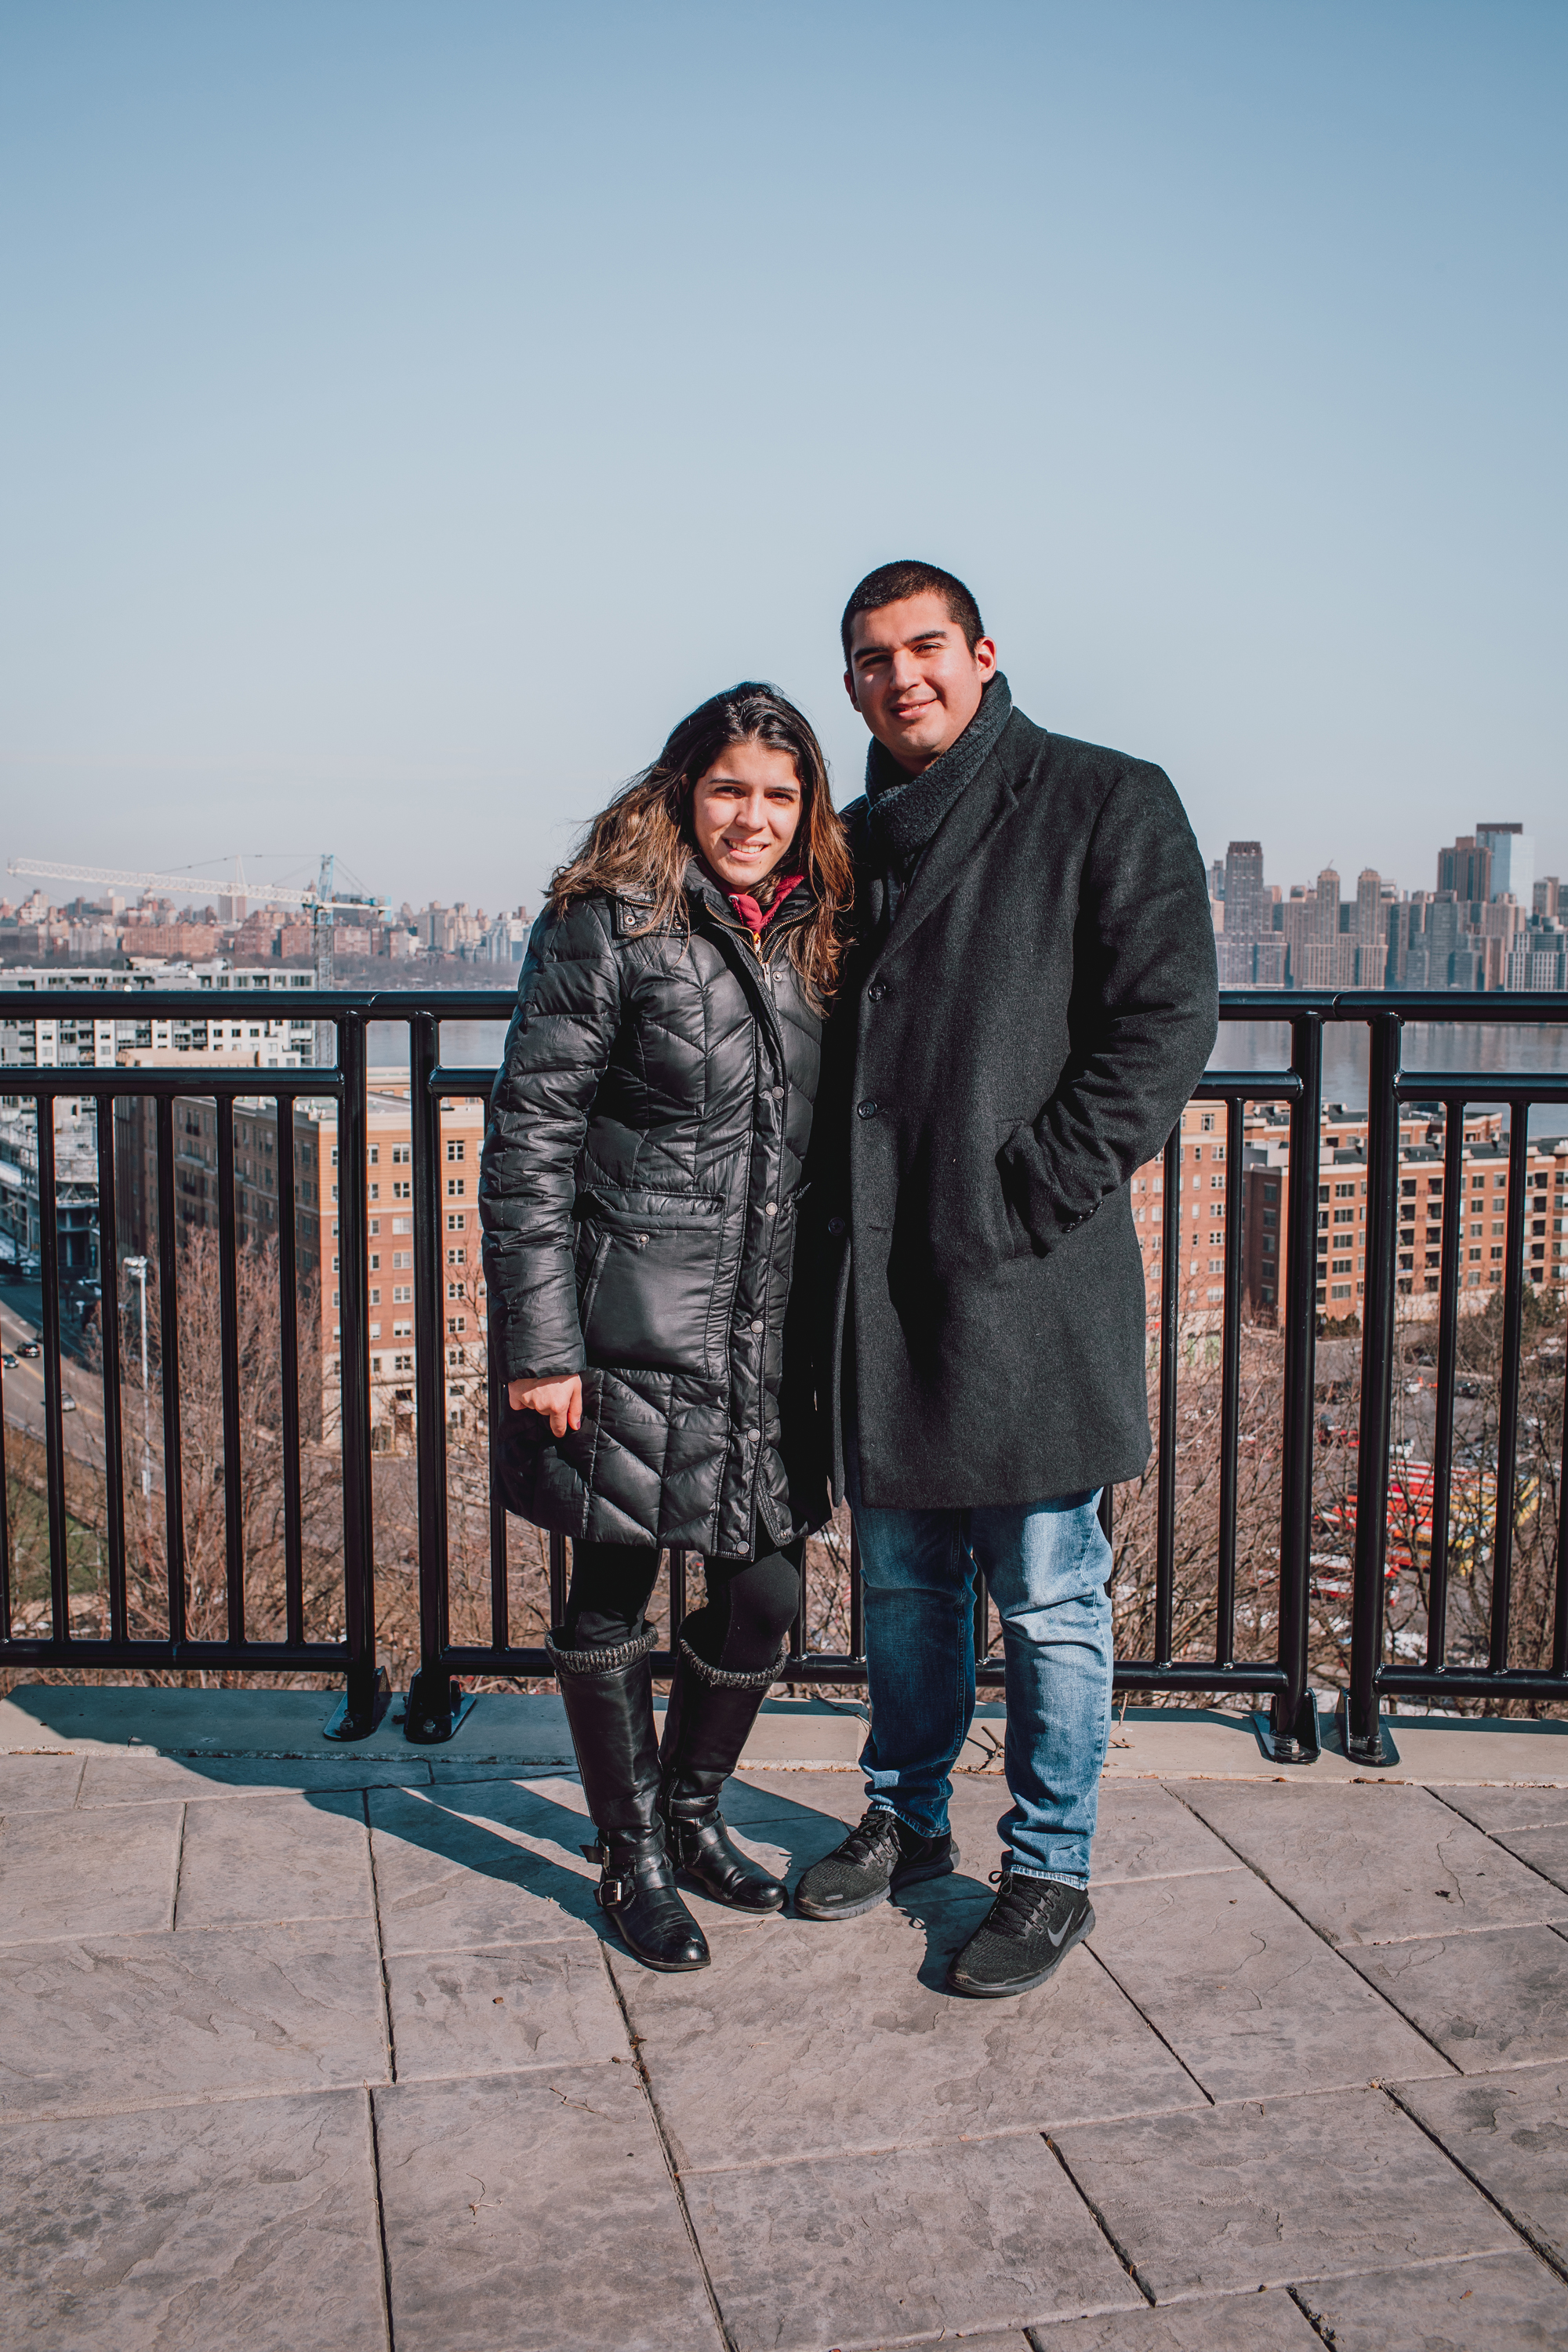 West New York has been the scene of many first dates, its heartbeat has been its compass. And this same home has been the playing field for many families who have shared a beautiful day on our Boulevard East. -